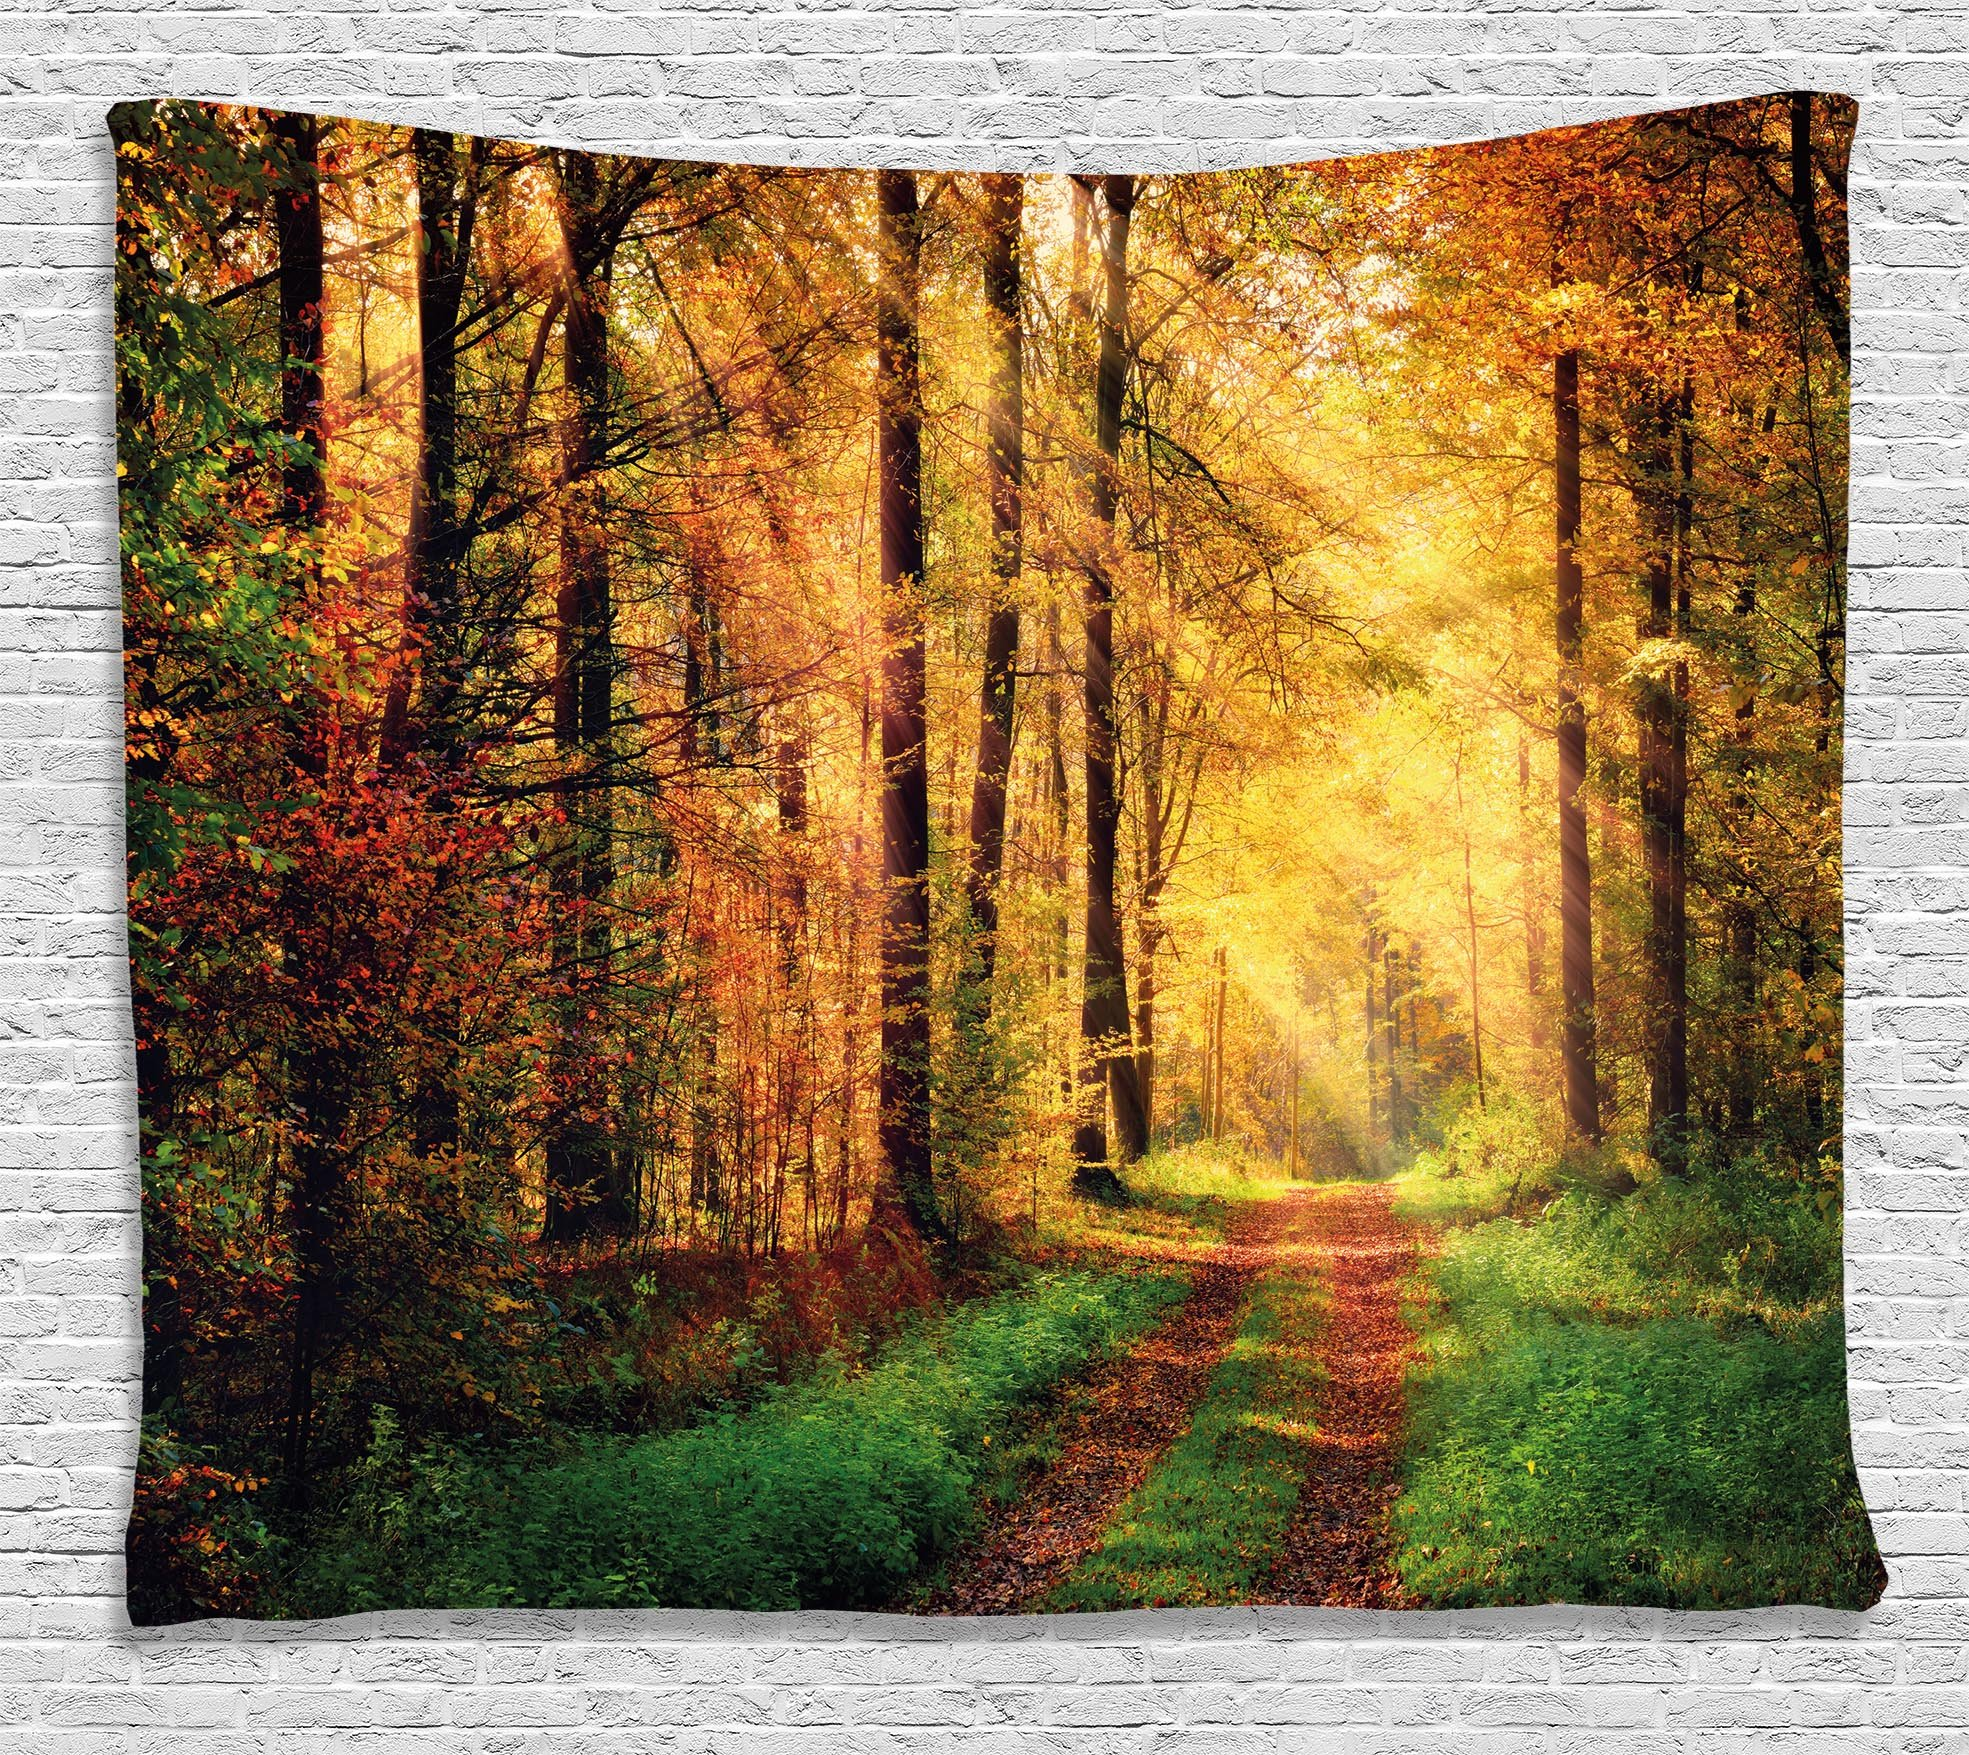 Ambesonne Modern Decor Tapestry by, Autumn Forest Scenery with Rays of Warm Sun Lights on Shady Trees Woods Art, Wall Hanging for Bedroom Living Room Dorm, 80WX60L Inches, Yellow Green